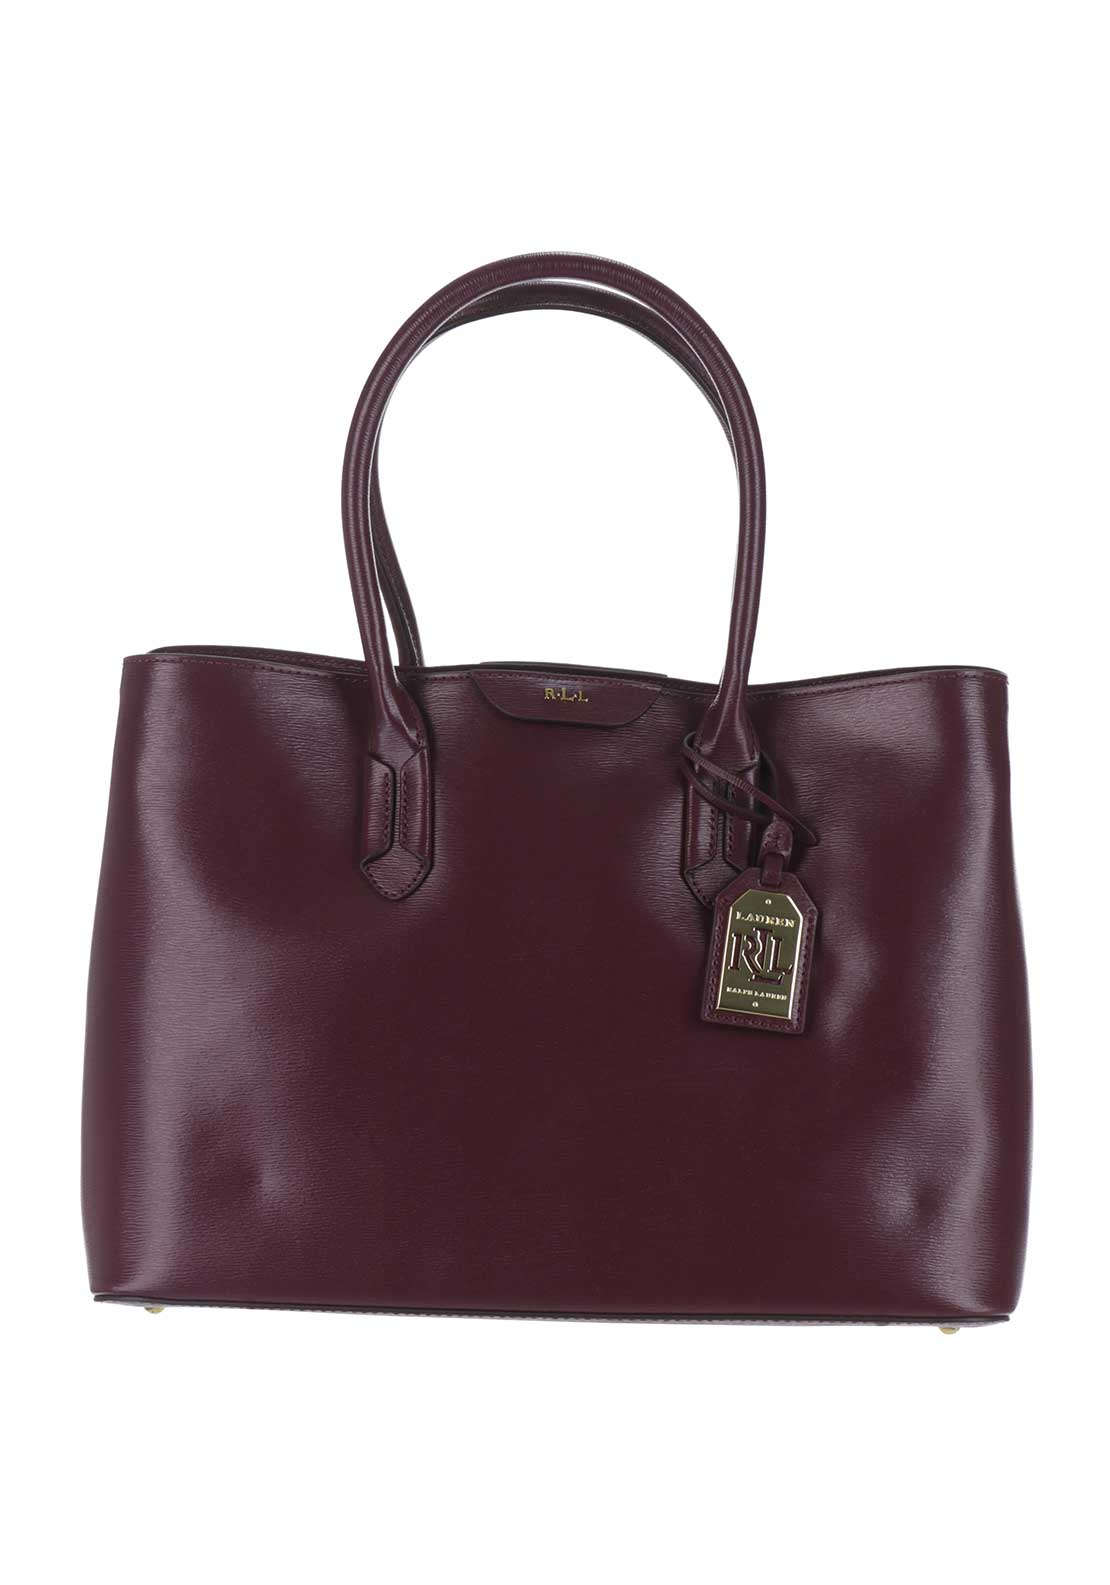 Lauren Ralph Lauren Leather City Tote Bag, Claret